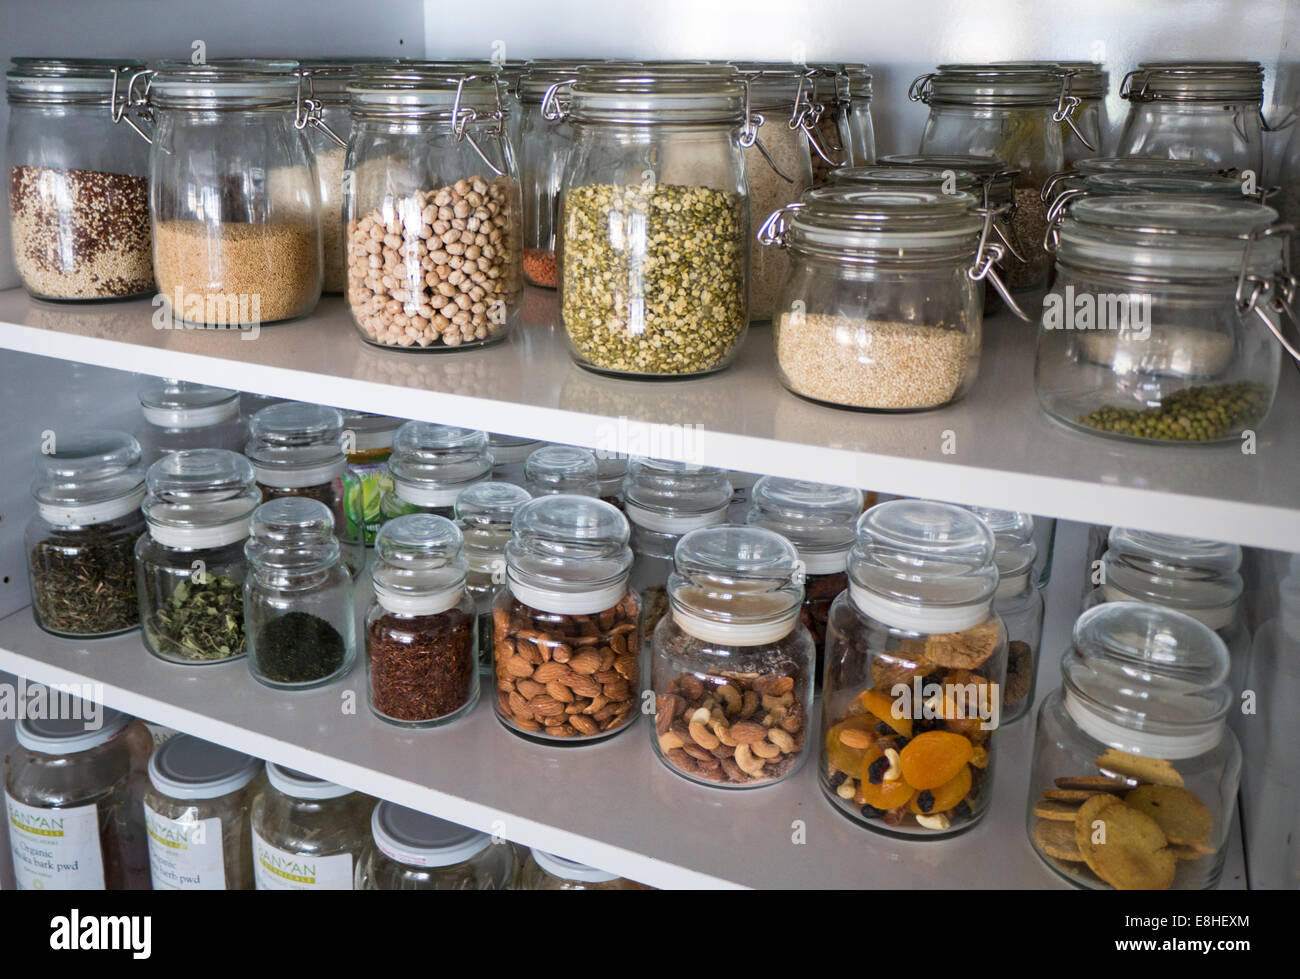 Storage Jars Containing Dried Nuts, Pulses And Fruit On A Shelf In A Kitchen